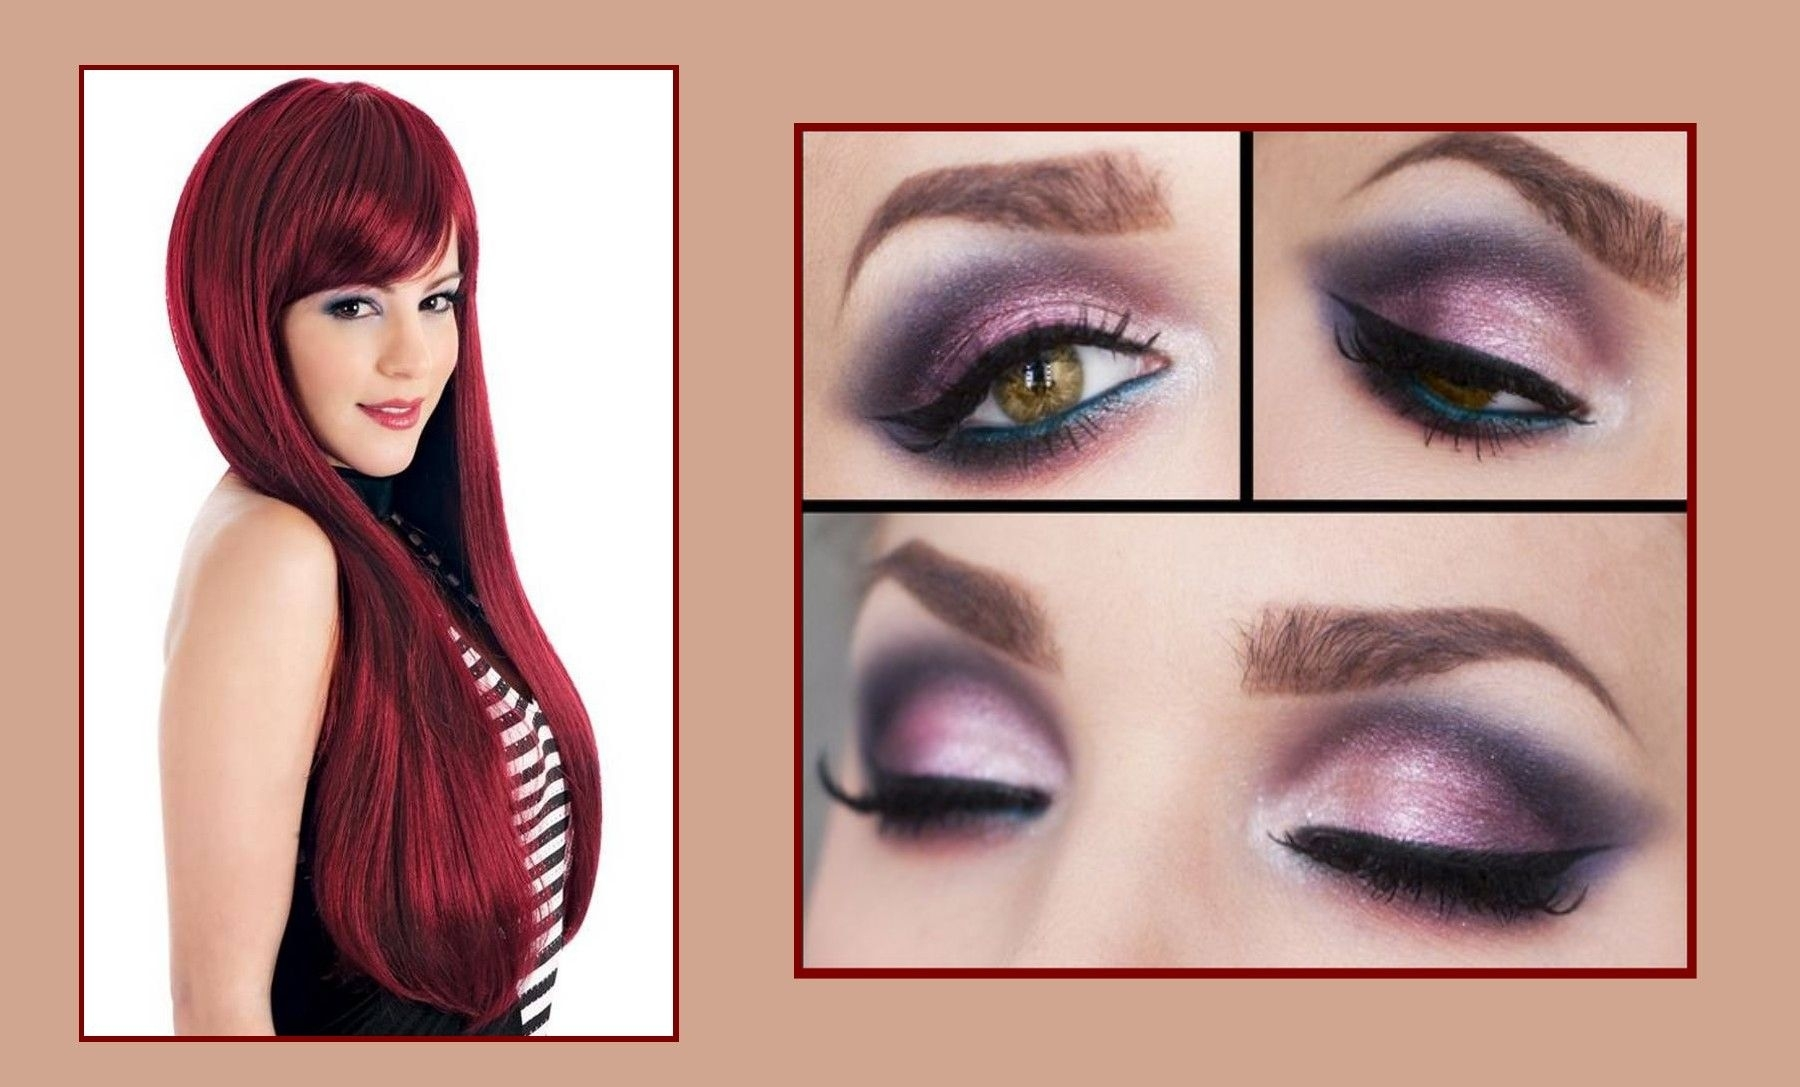 Makeup For Hazel Green Eyes | Makeup For Green Eyes And Red pertaining to Best Eyeshadow For Green Eyes And Red Hair